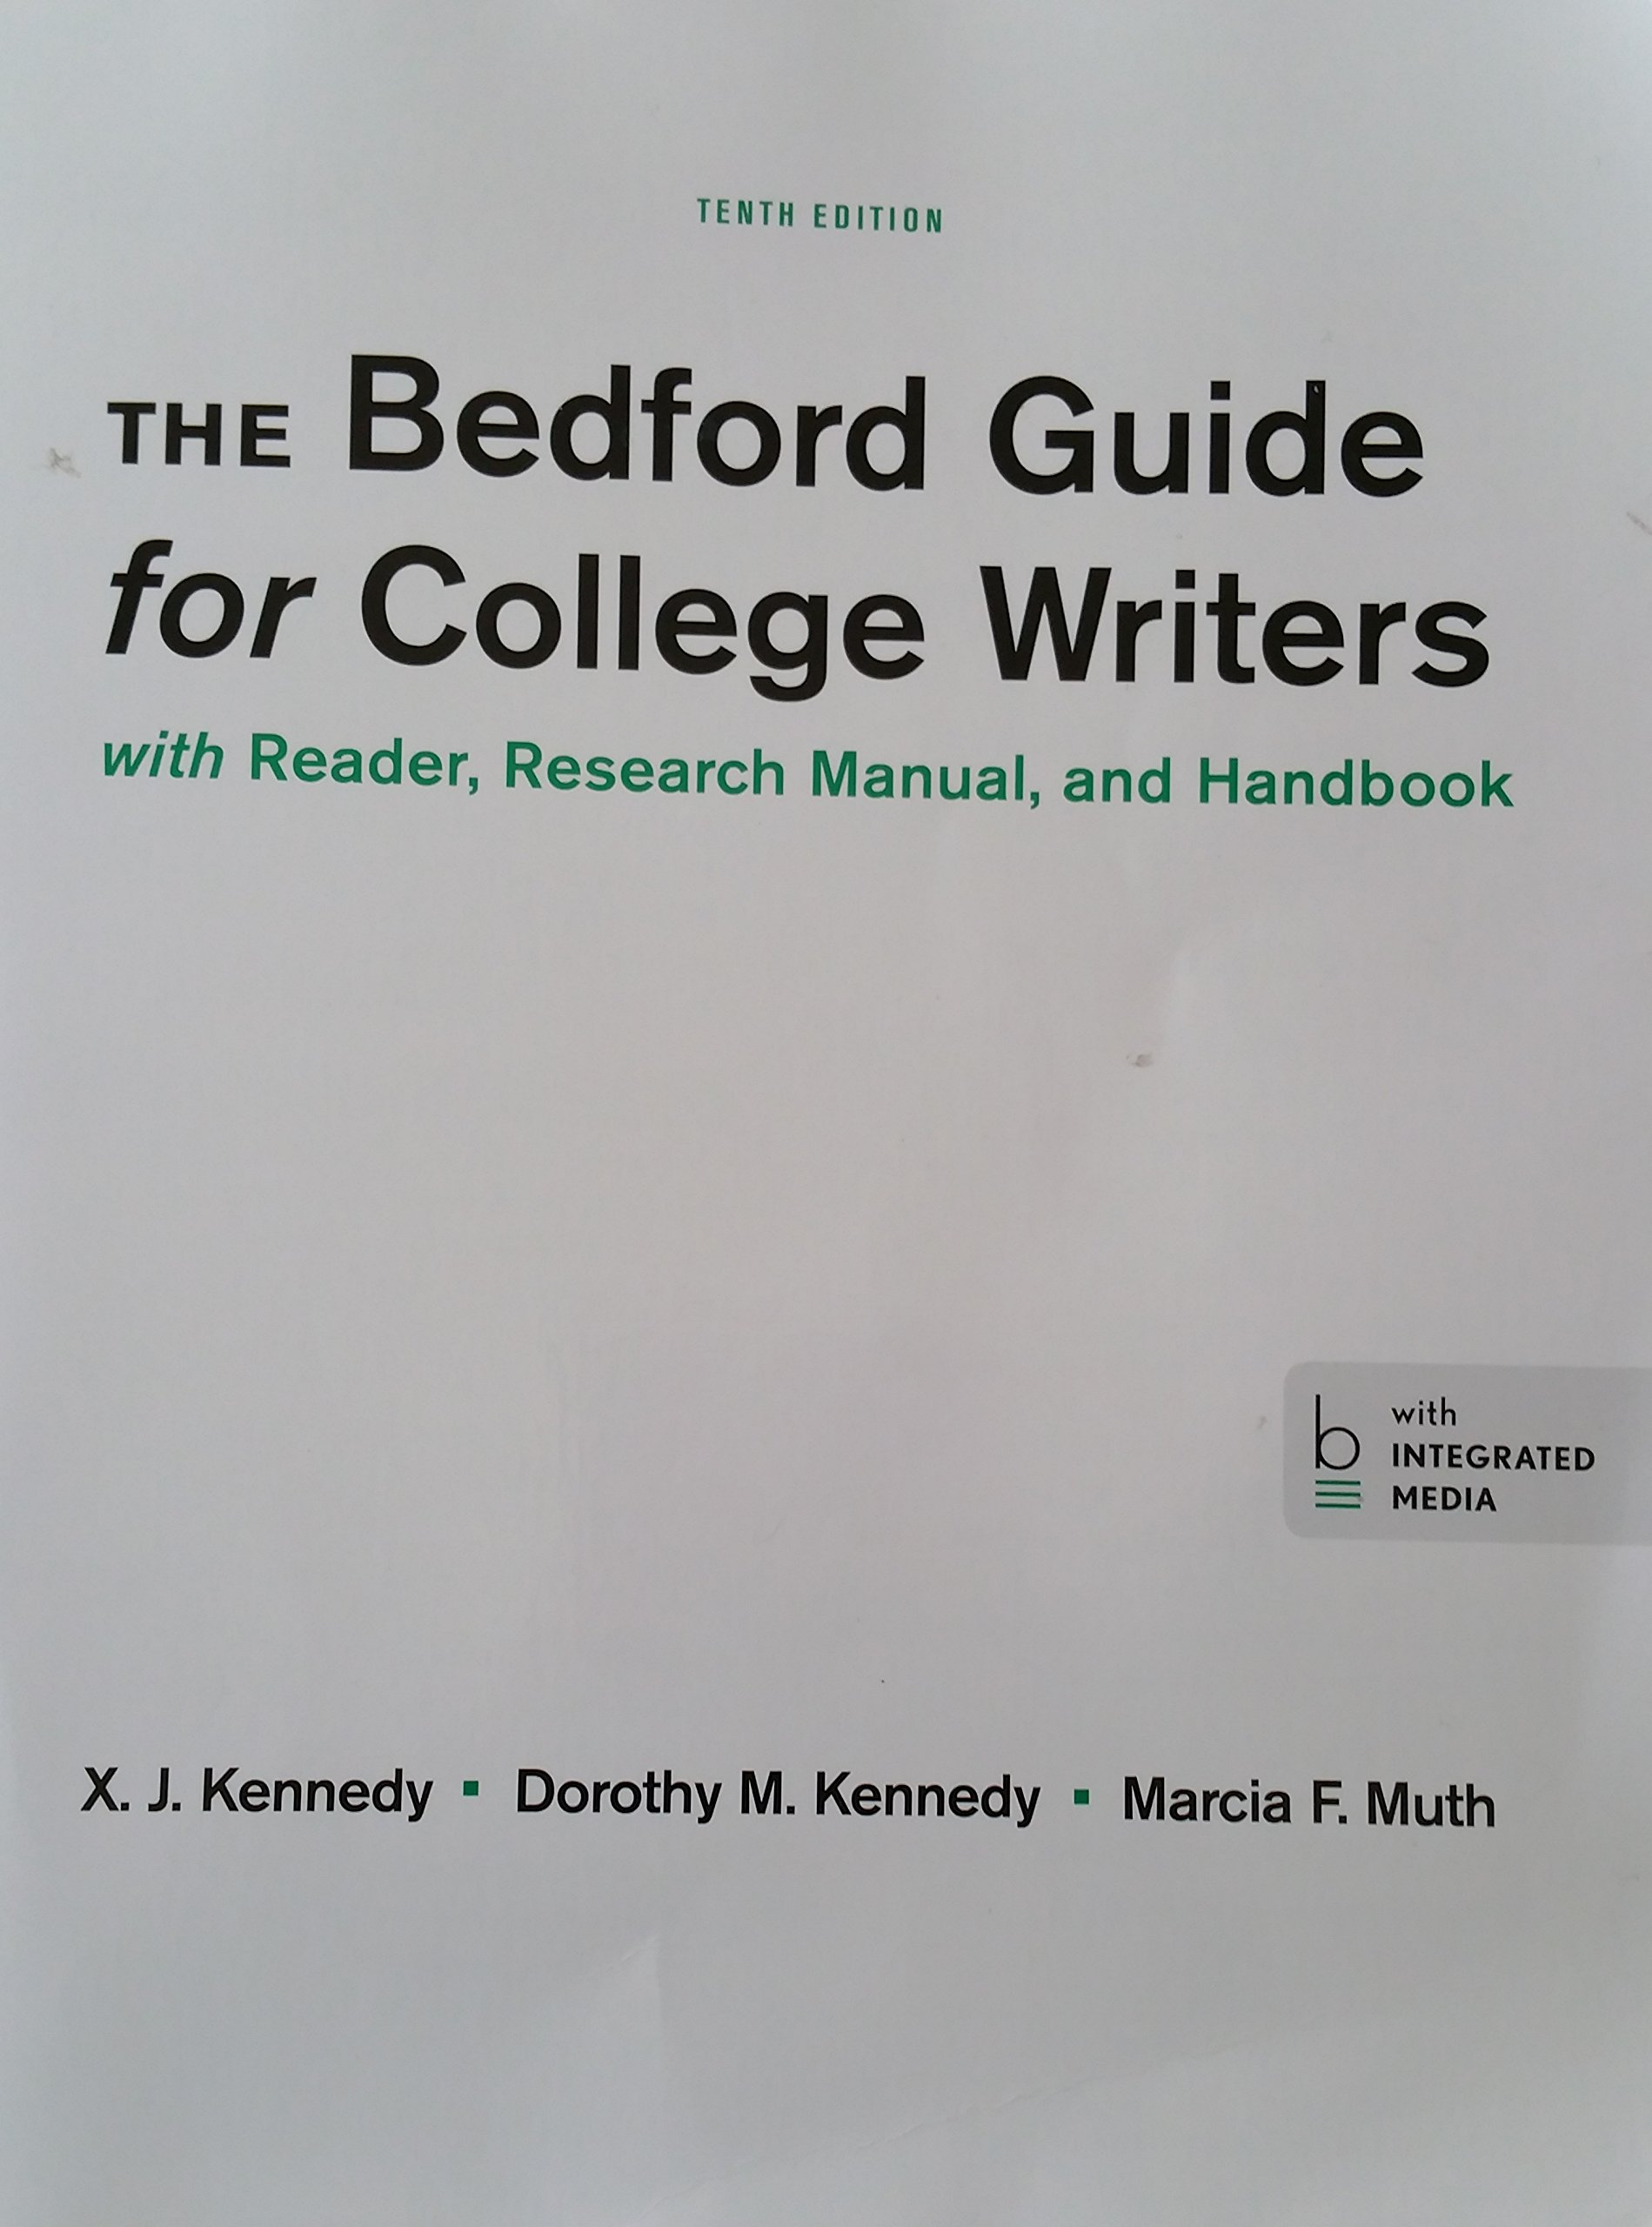 The bedford guide for college writers with reader research manual the bedford guide for college writers with reader research manual and handbook 10th edition kennedykennedymuth 9781457694882 amazon books fandeluxe Images